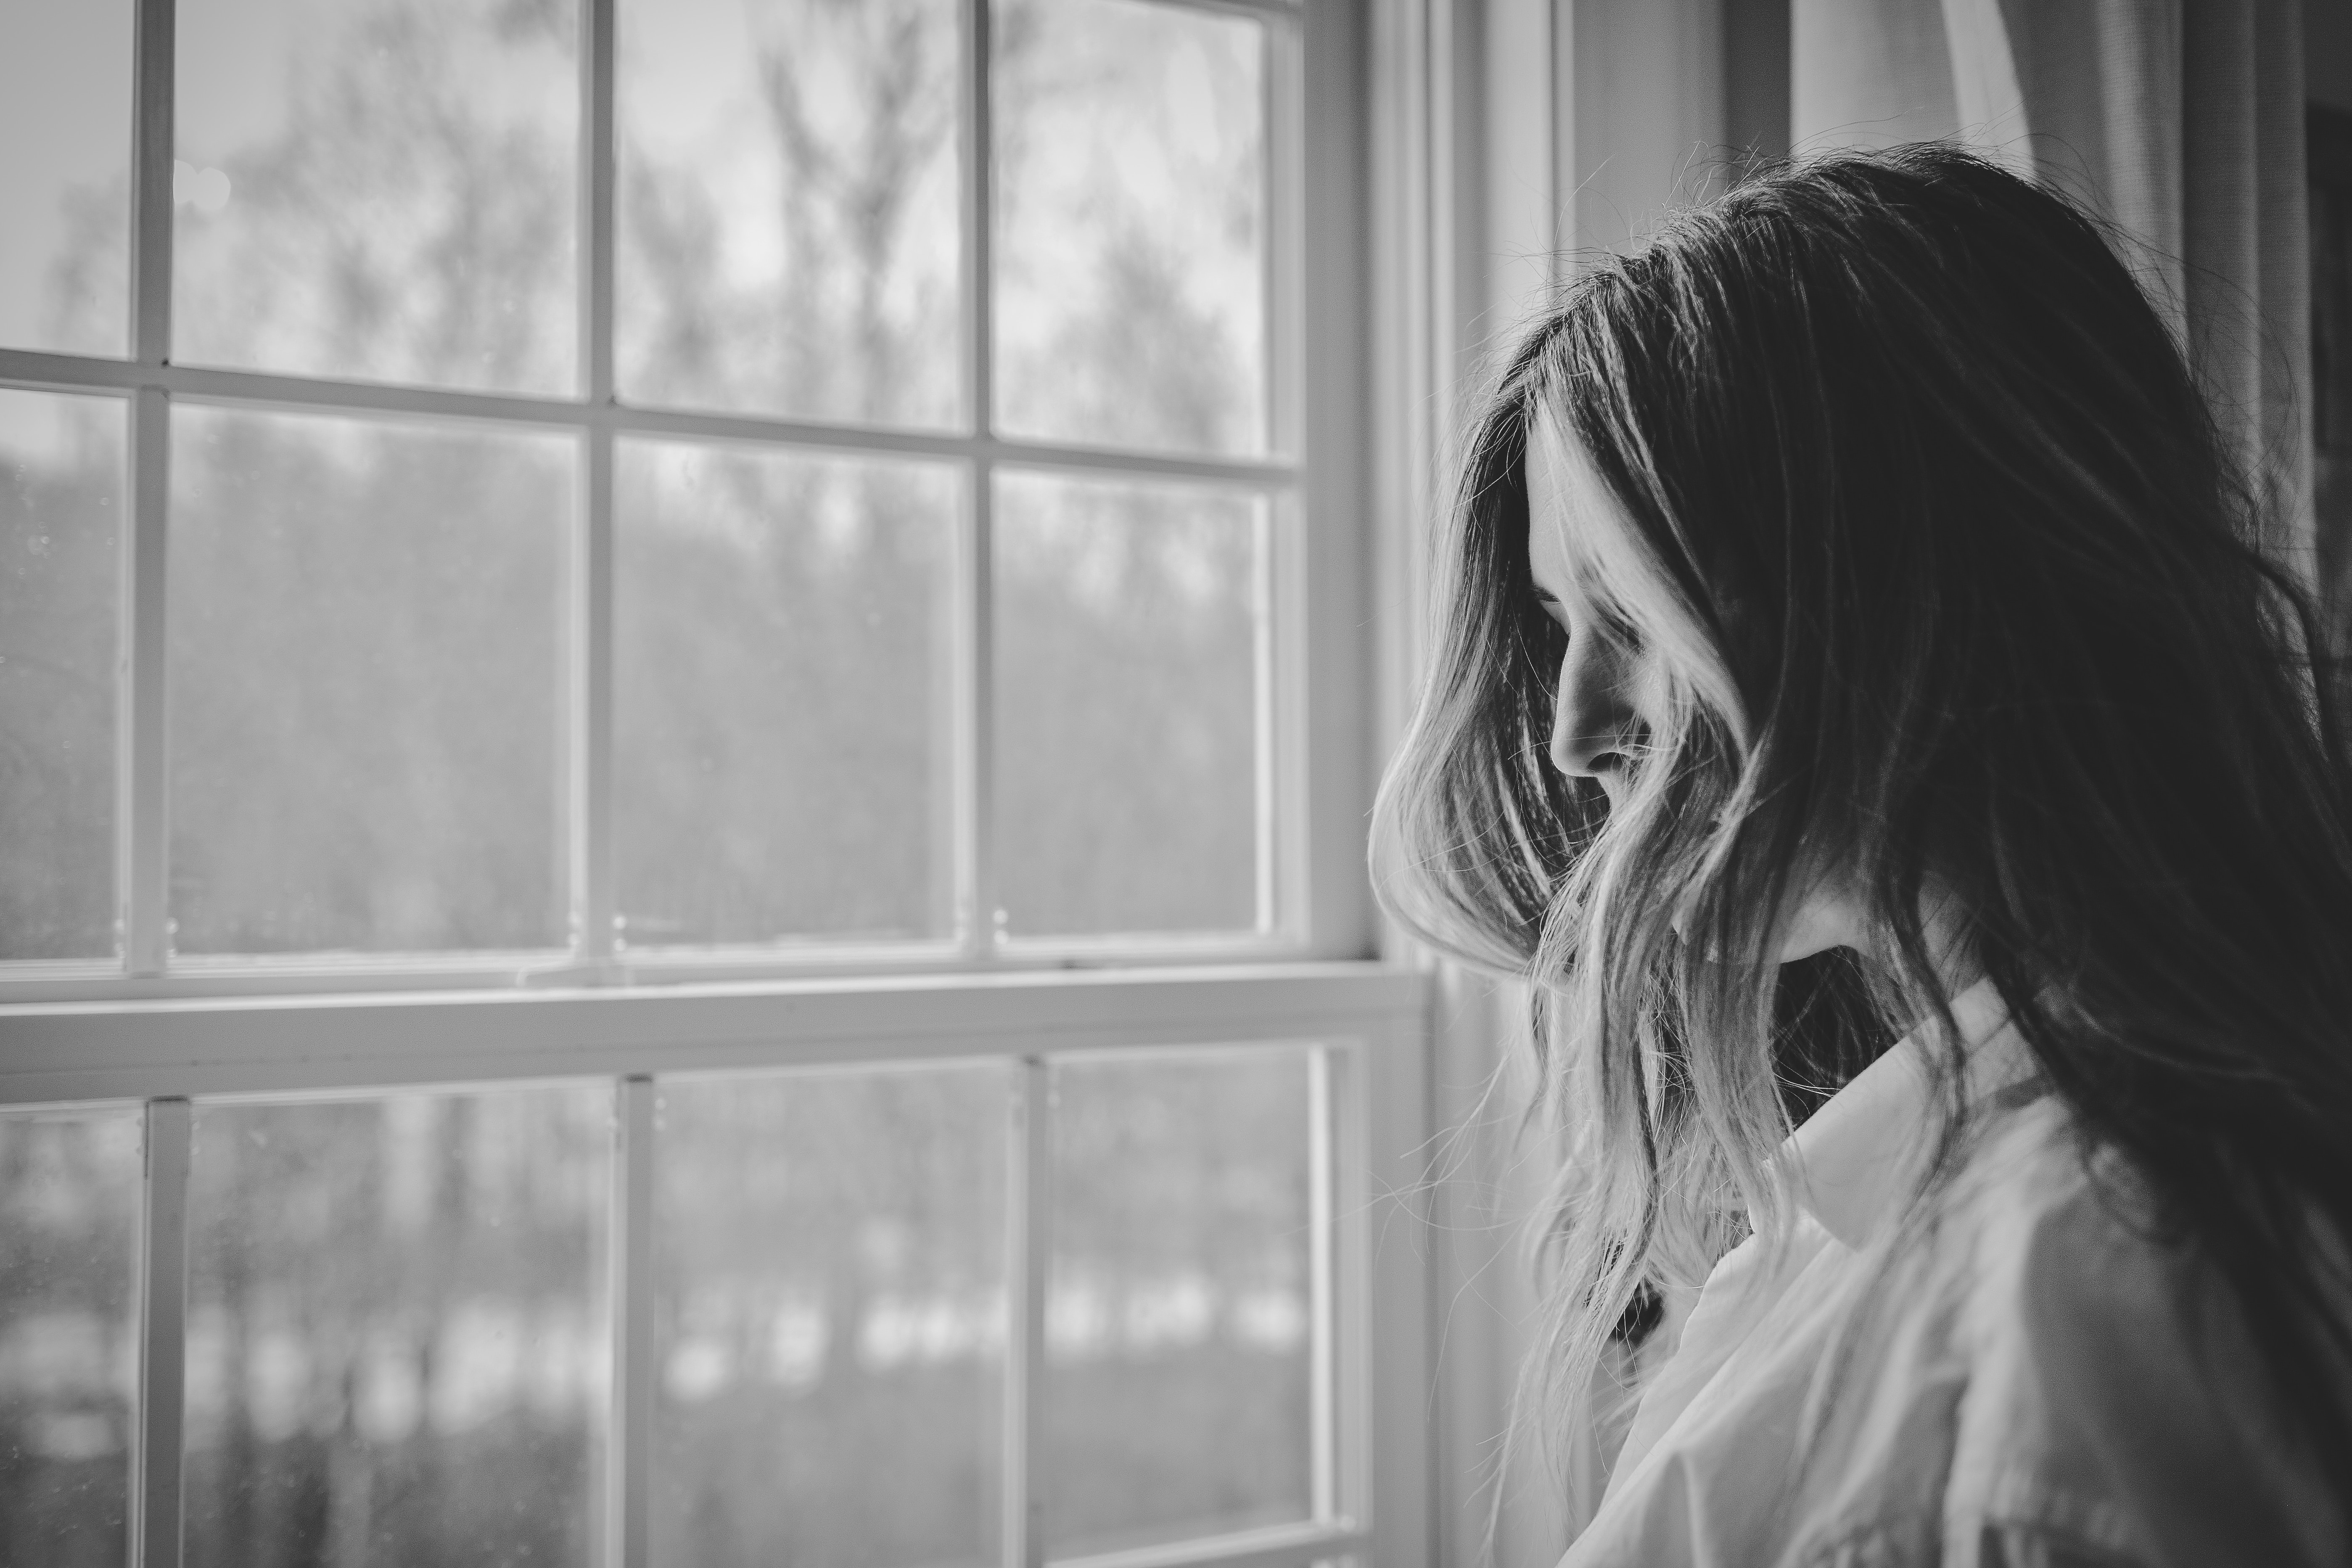 black and white. woman with face hidden by her hair looking out a window